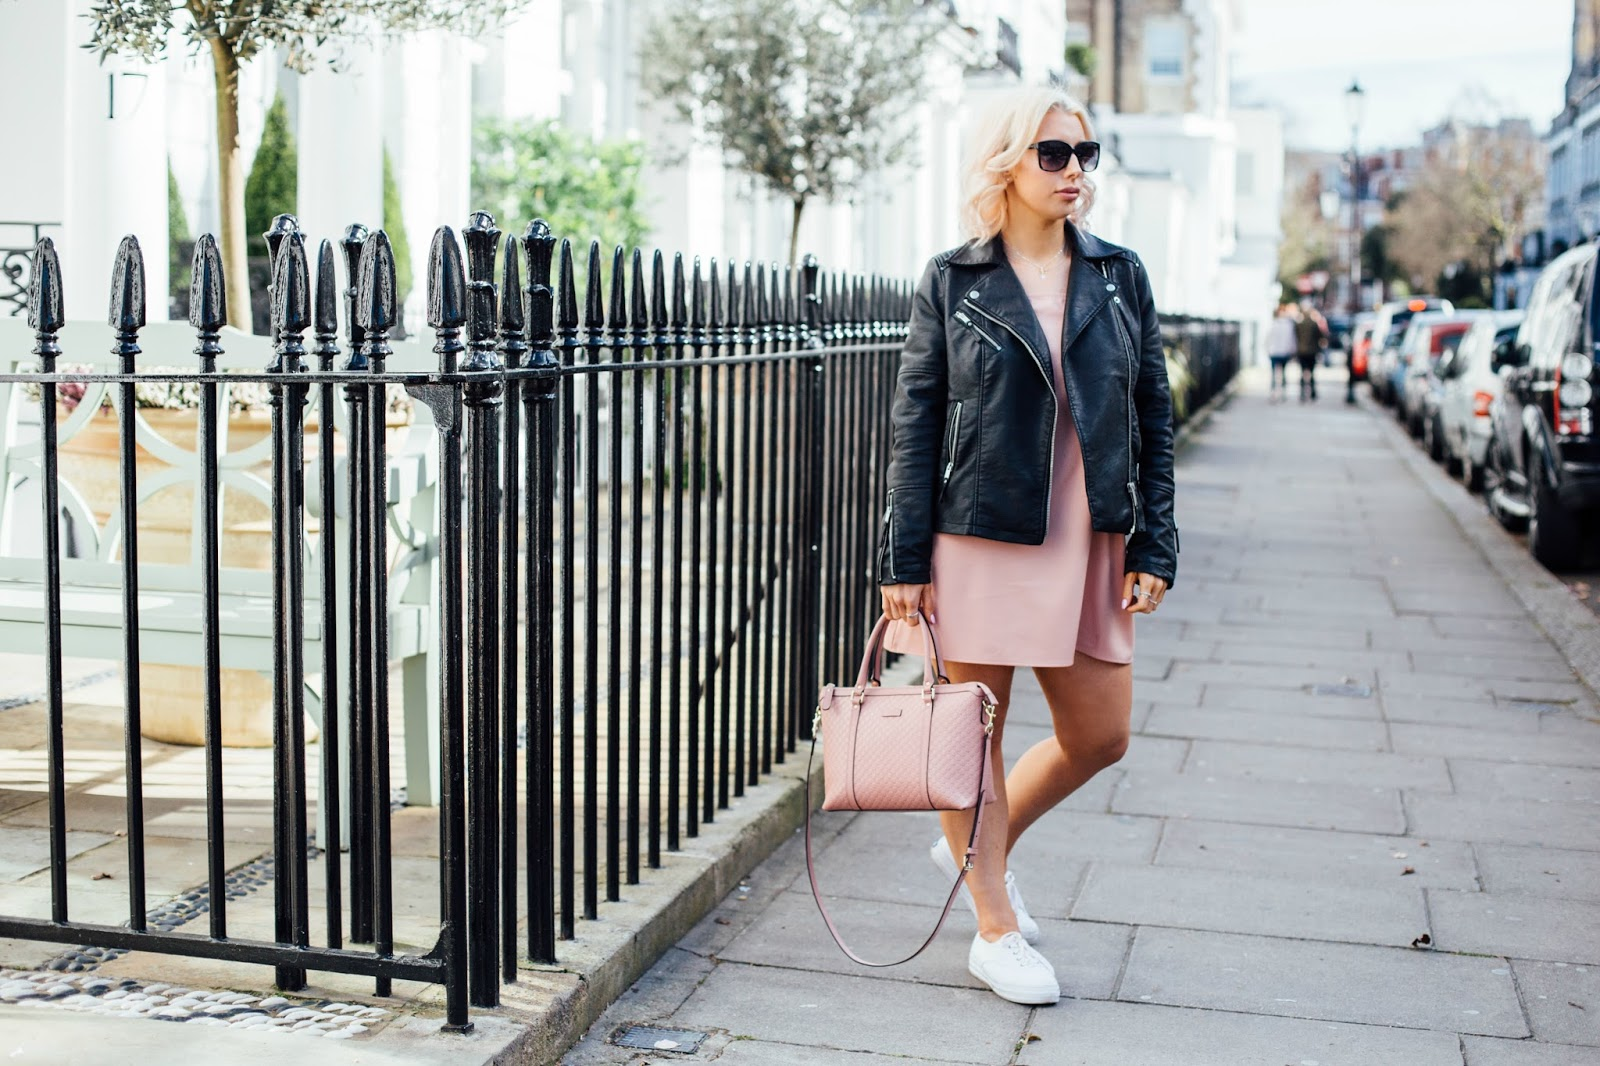 Spring look with pink dress and biker jacket